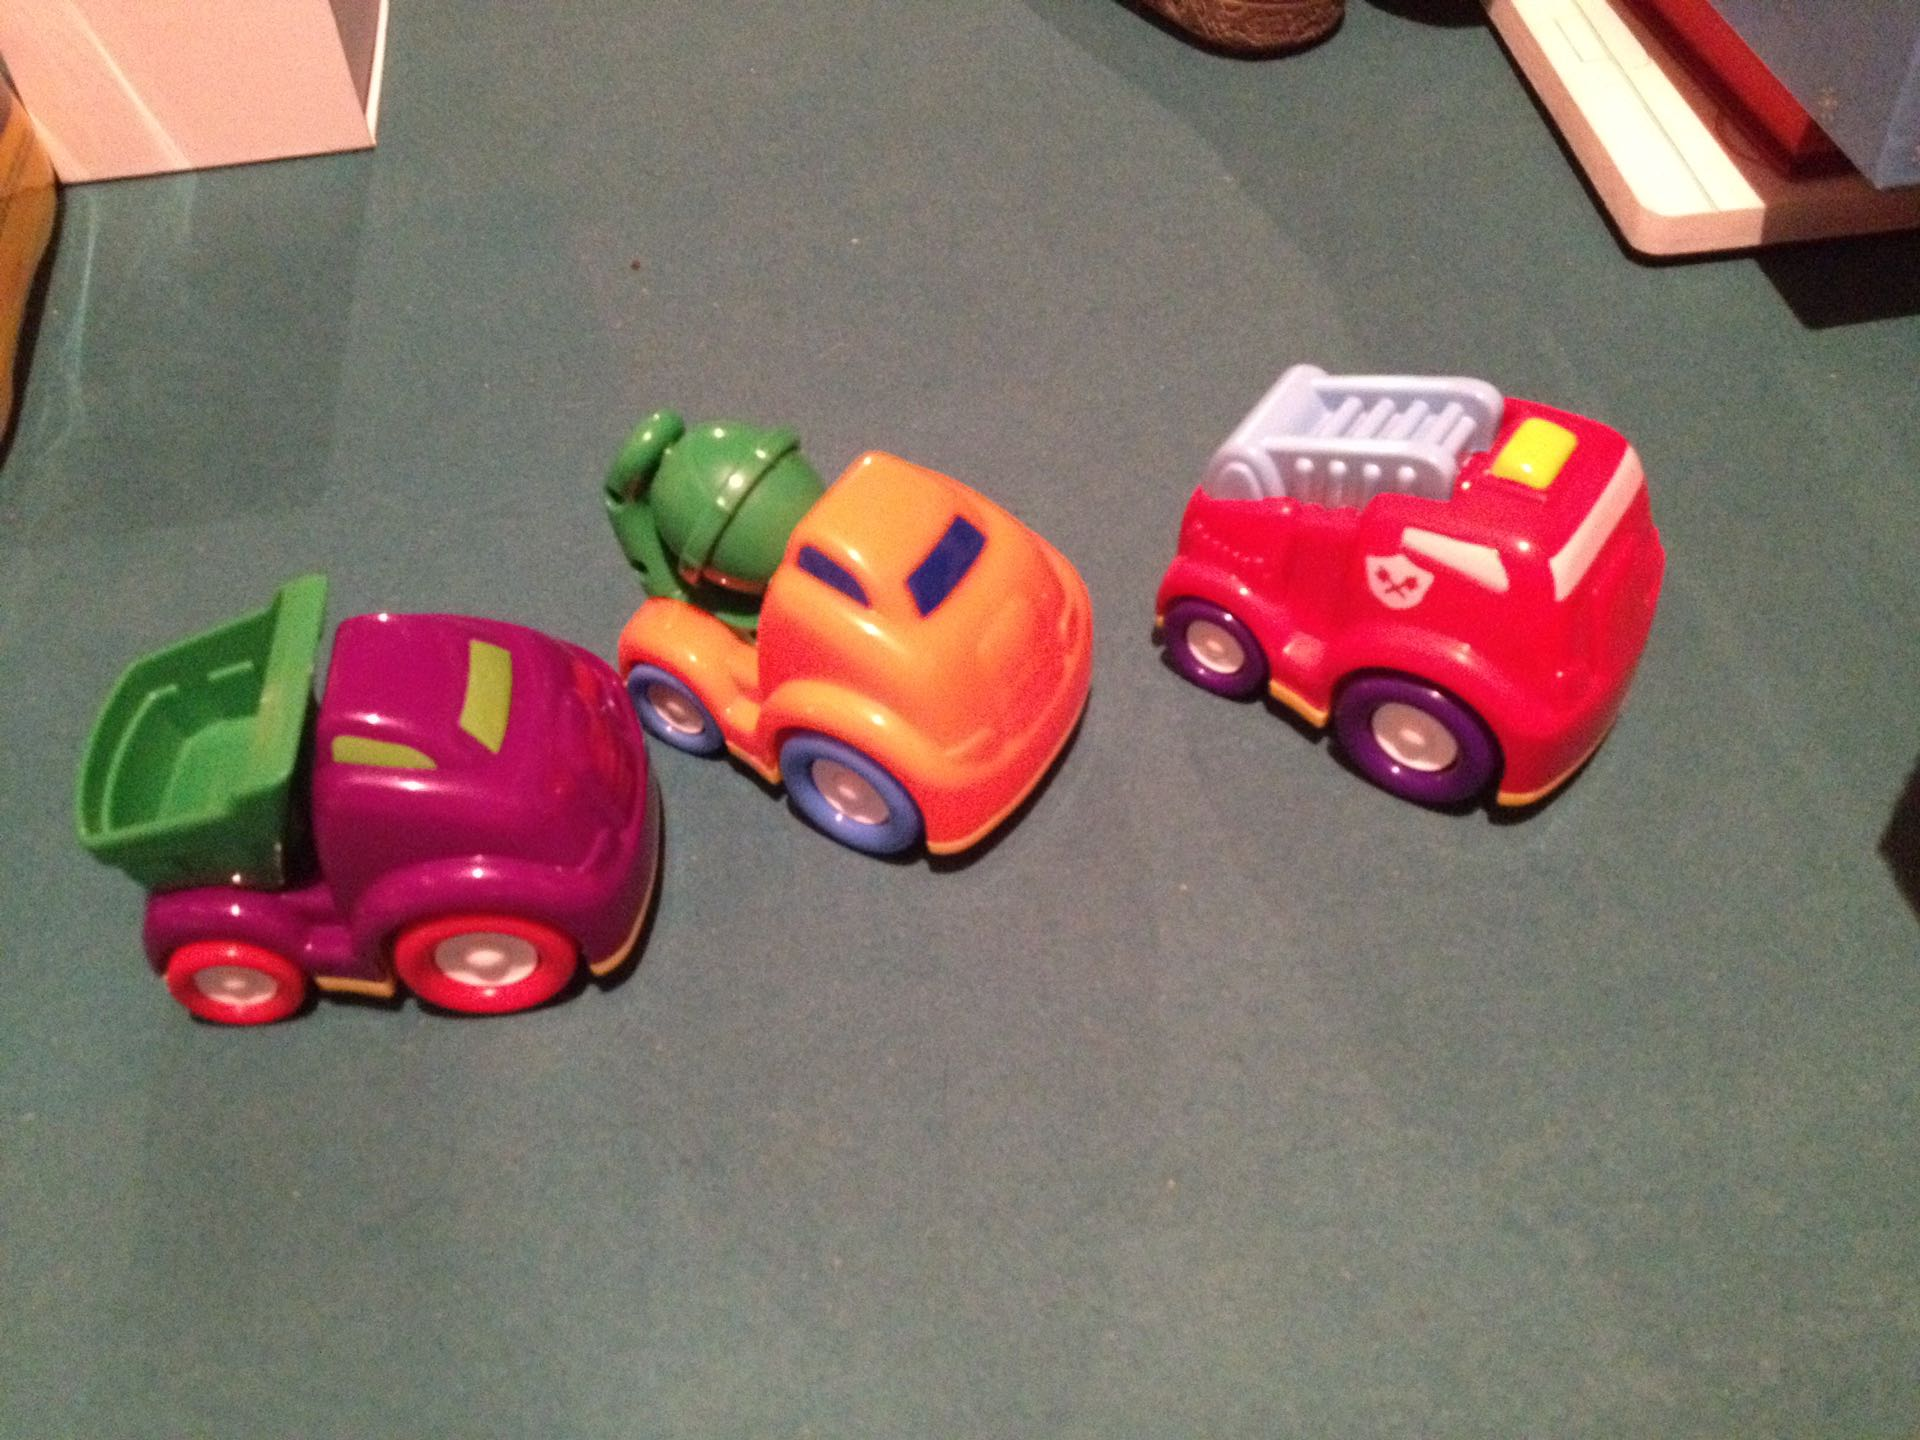 3 vehicles